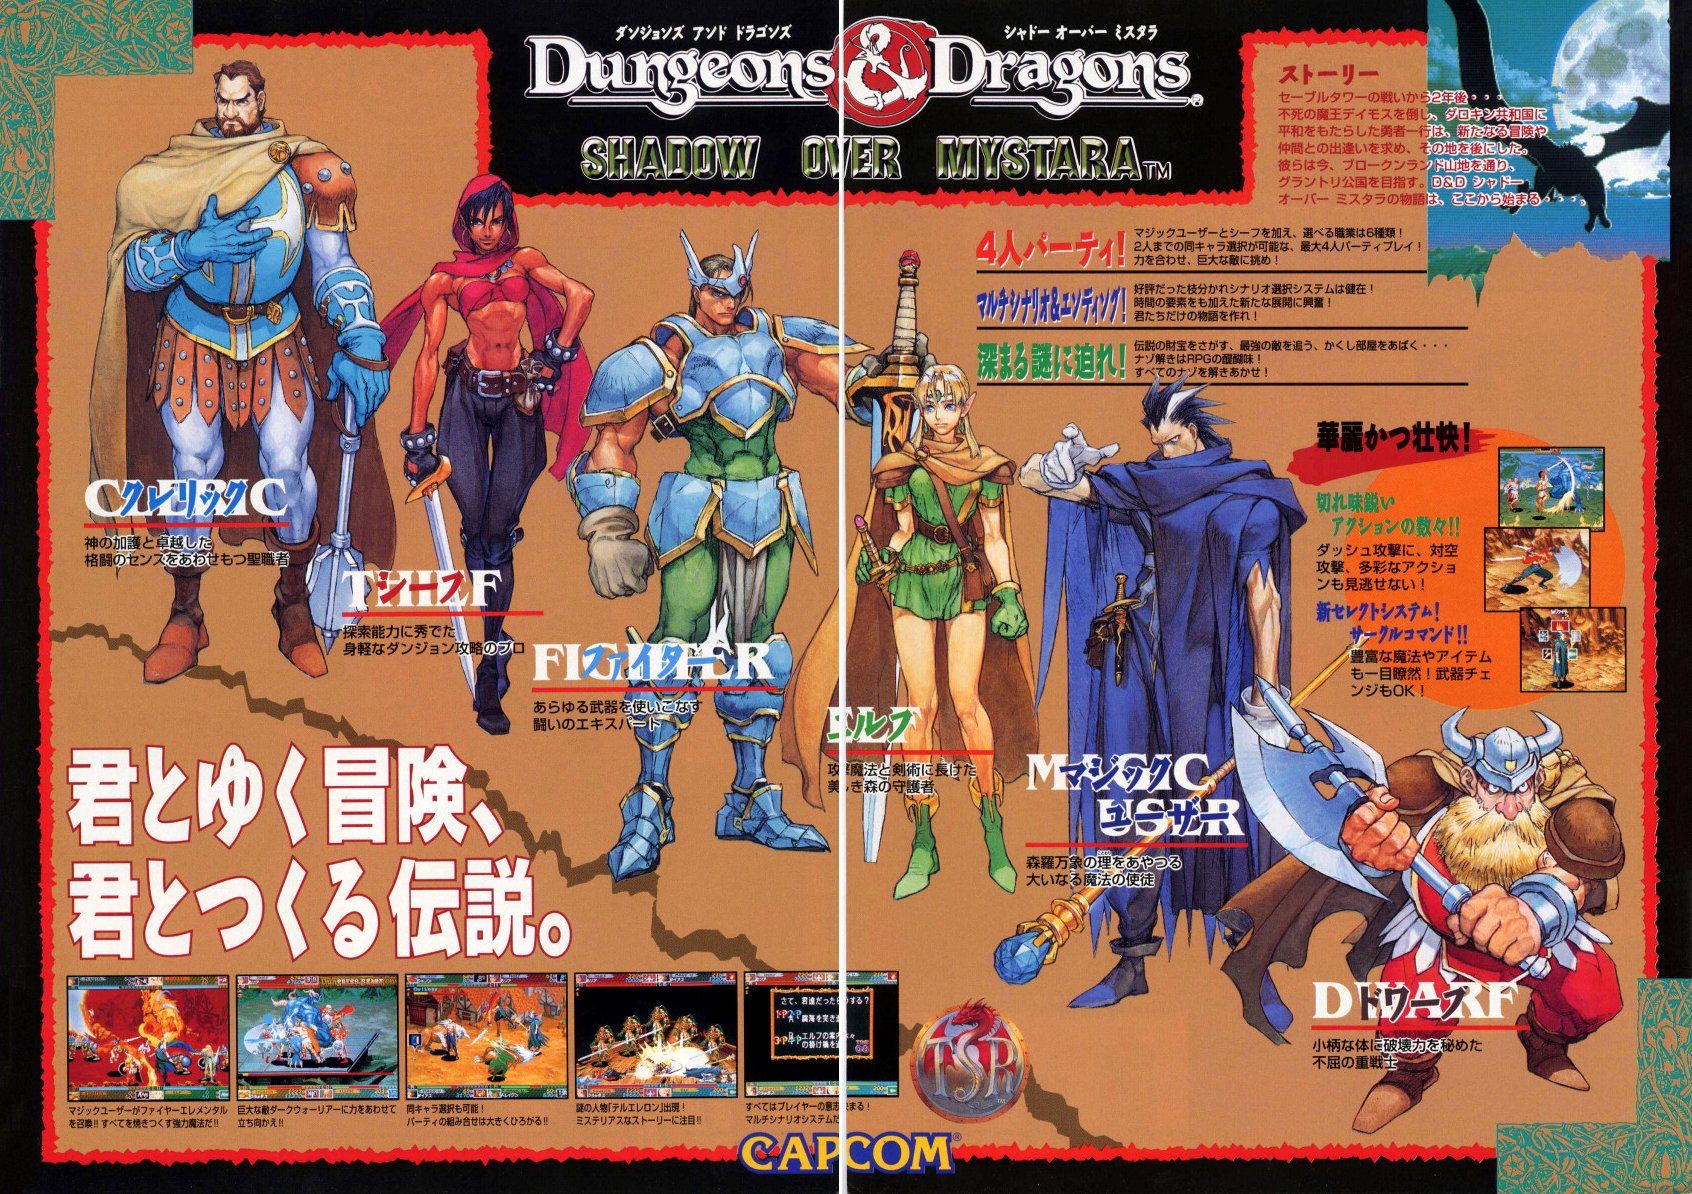 1363373227-dungeons-and-dragons-shadow-over-mystara-flyer